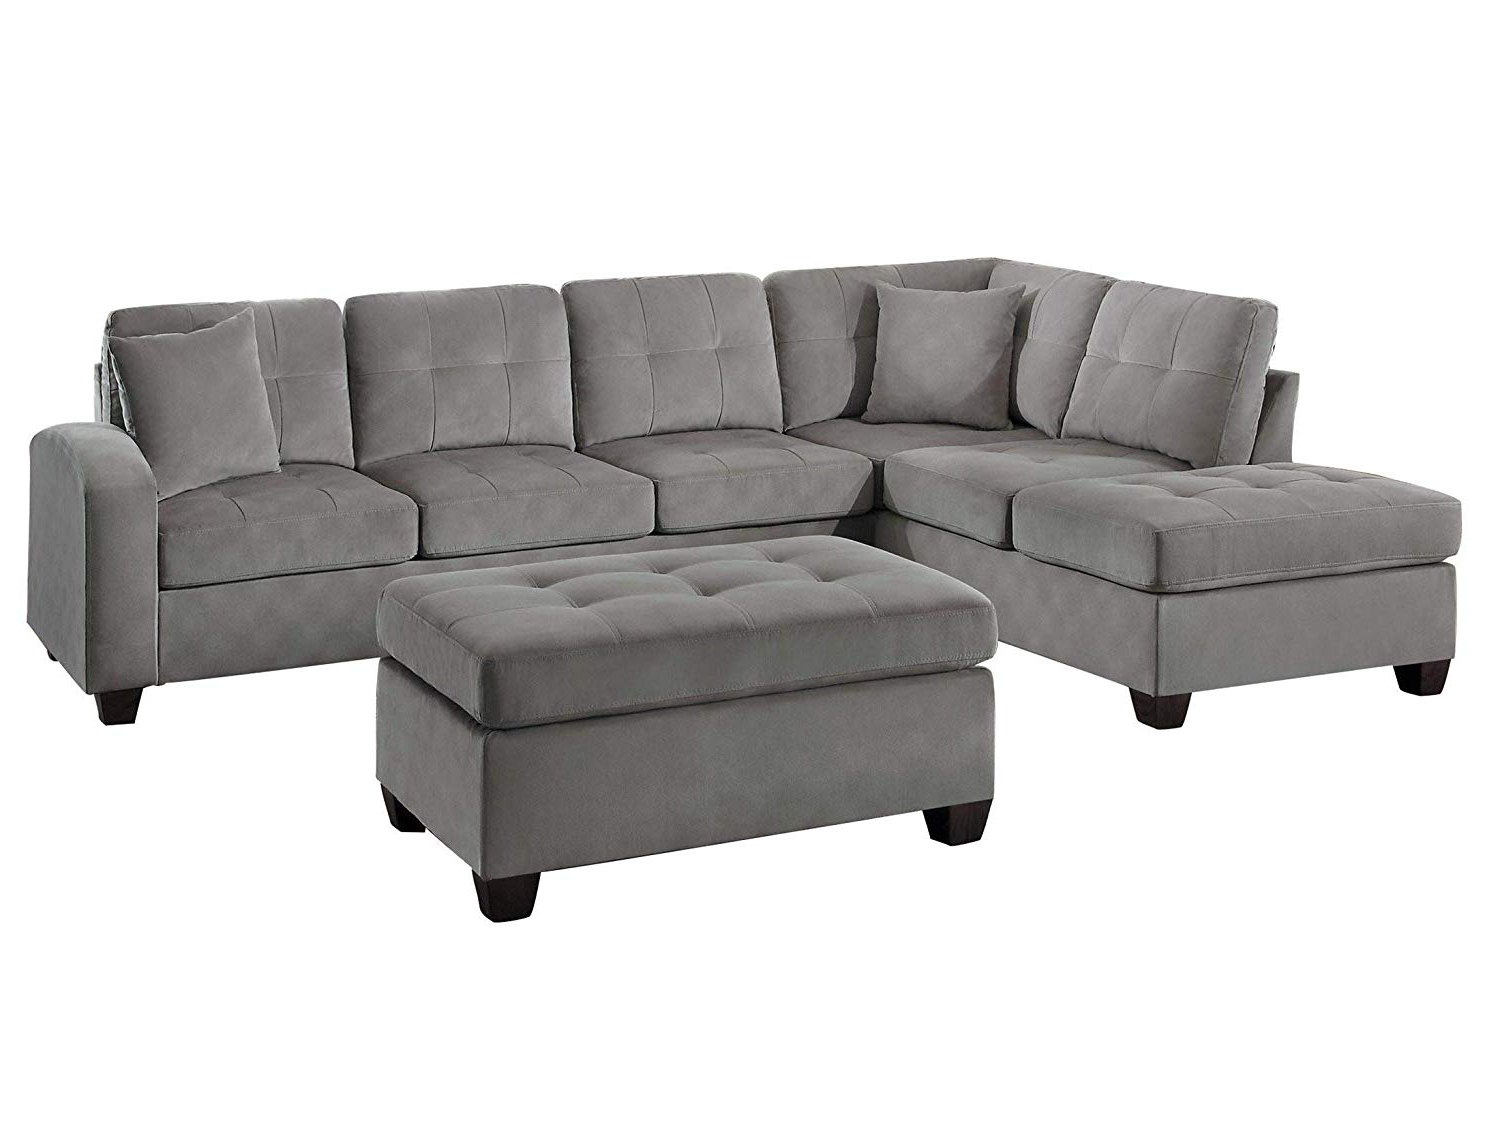 Current 3Pc Hartford Storage Sectional Futon Sofas And Hartford Storage Ottoman Tan With Regard To Cheap Chaise Ottoman, Find Chaise Ottoman Deals On Line At (View 22 of 23)